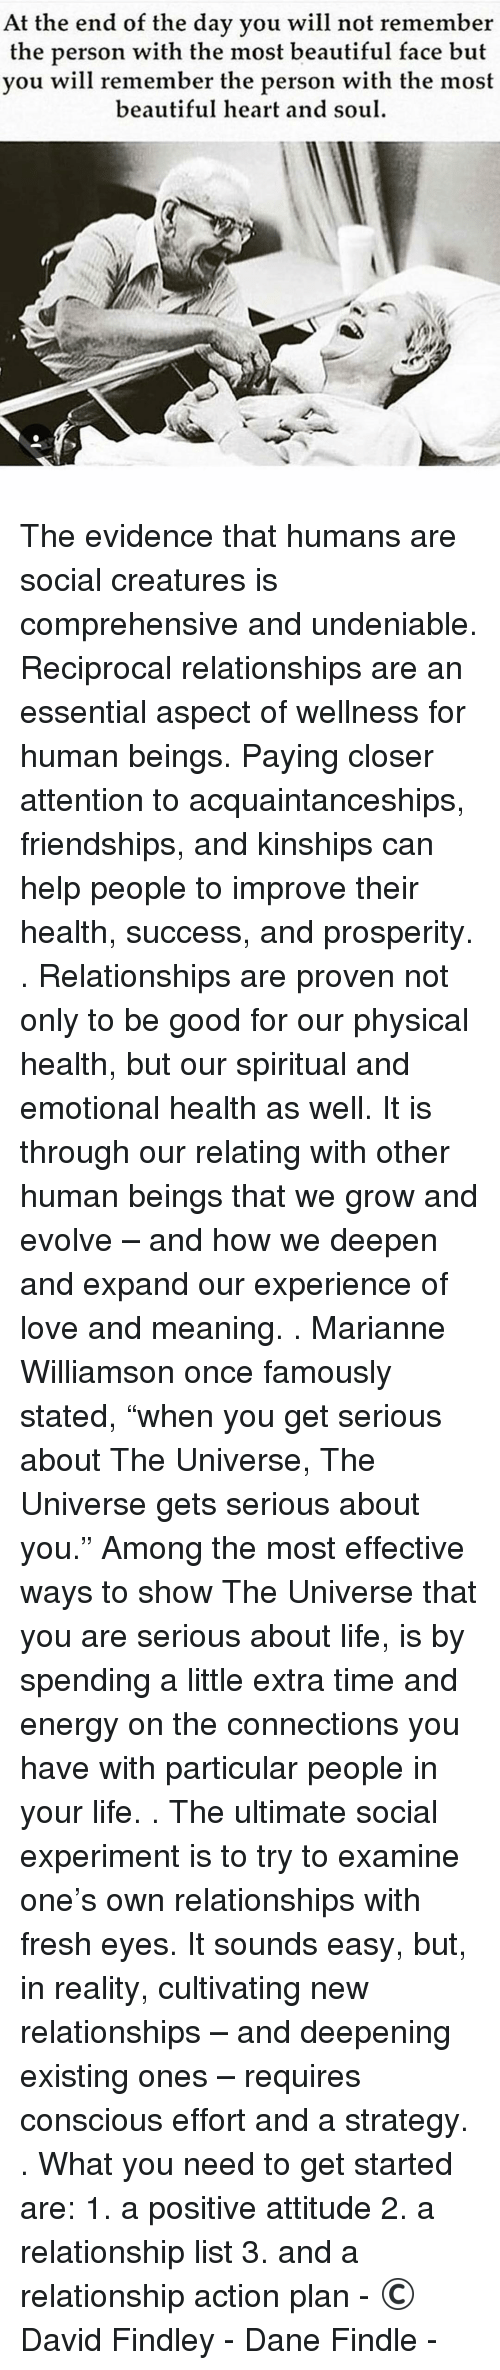 """marianne: At the end of the day you will not remember  the person with the most beautiful face but  you will remember the person with the most  beautiful heart and soul The evidence that humans are social creatures is comprehensive and undeniable. Reciprocal relationships are an essential aspect of wellness for human beings. Paying closer attention to acquaintanceships, friendships, and kinships can help people to improve their health, success, and prosperity. . Relationships are proven not only to be good for our physical health, but our spiritual and emotional health as well. It is through our relating with other human beings that we grow and evolve – and how we deepen and expand our experience of love and meaning. . Marianne Williamson once famously stated, """"when you get serious about The Universe, The Universe gets serious about you."""" Among the most effective ways to show The Universe that you are serious about life, is by spending a little extra time and energy on the connections you have with particular people in your life. . The ultimate social experiment is to try to examine one's own relationships with fresh eyes. It sounds easy, but, in reality, cultivating new relationships – and deepening existing ones – requires conscious effort and a strategy. . What you need to get started are: 1. a positive attitude 2. a relationship list 3. and a relationship action plan - © David Findley - Dane Findle -"""